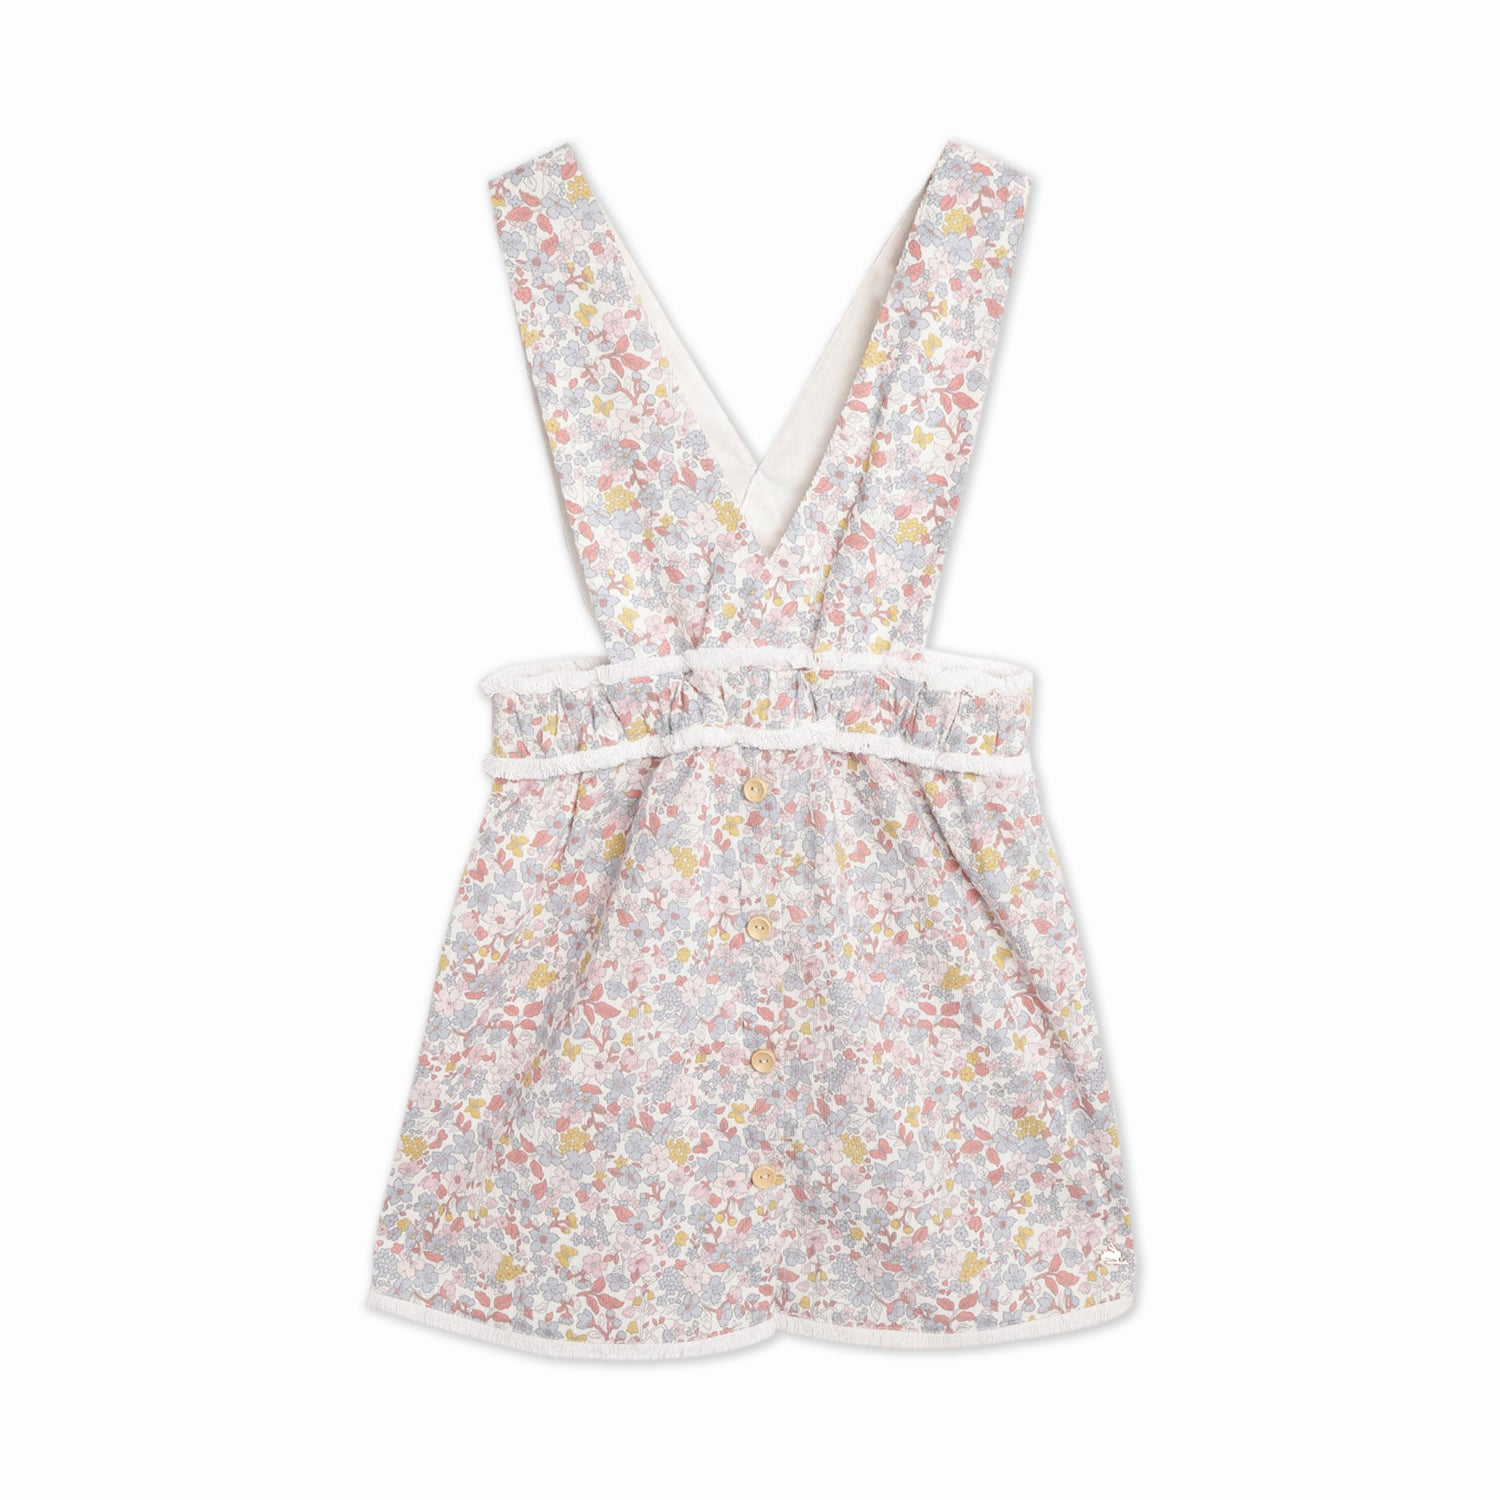 Cherry-Crumble-Kids-Girls-Sleevless--Square-Neck-Full-Length-Floral-Dress-Dungaree